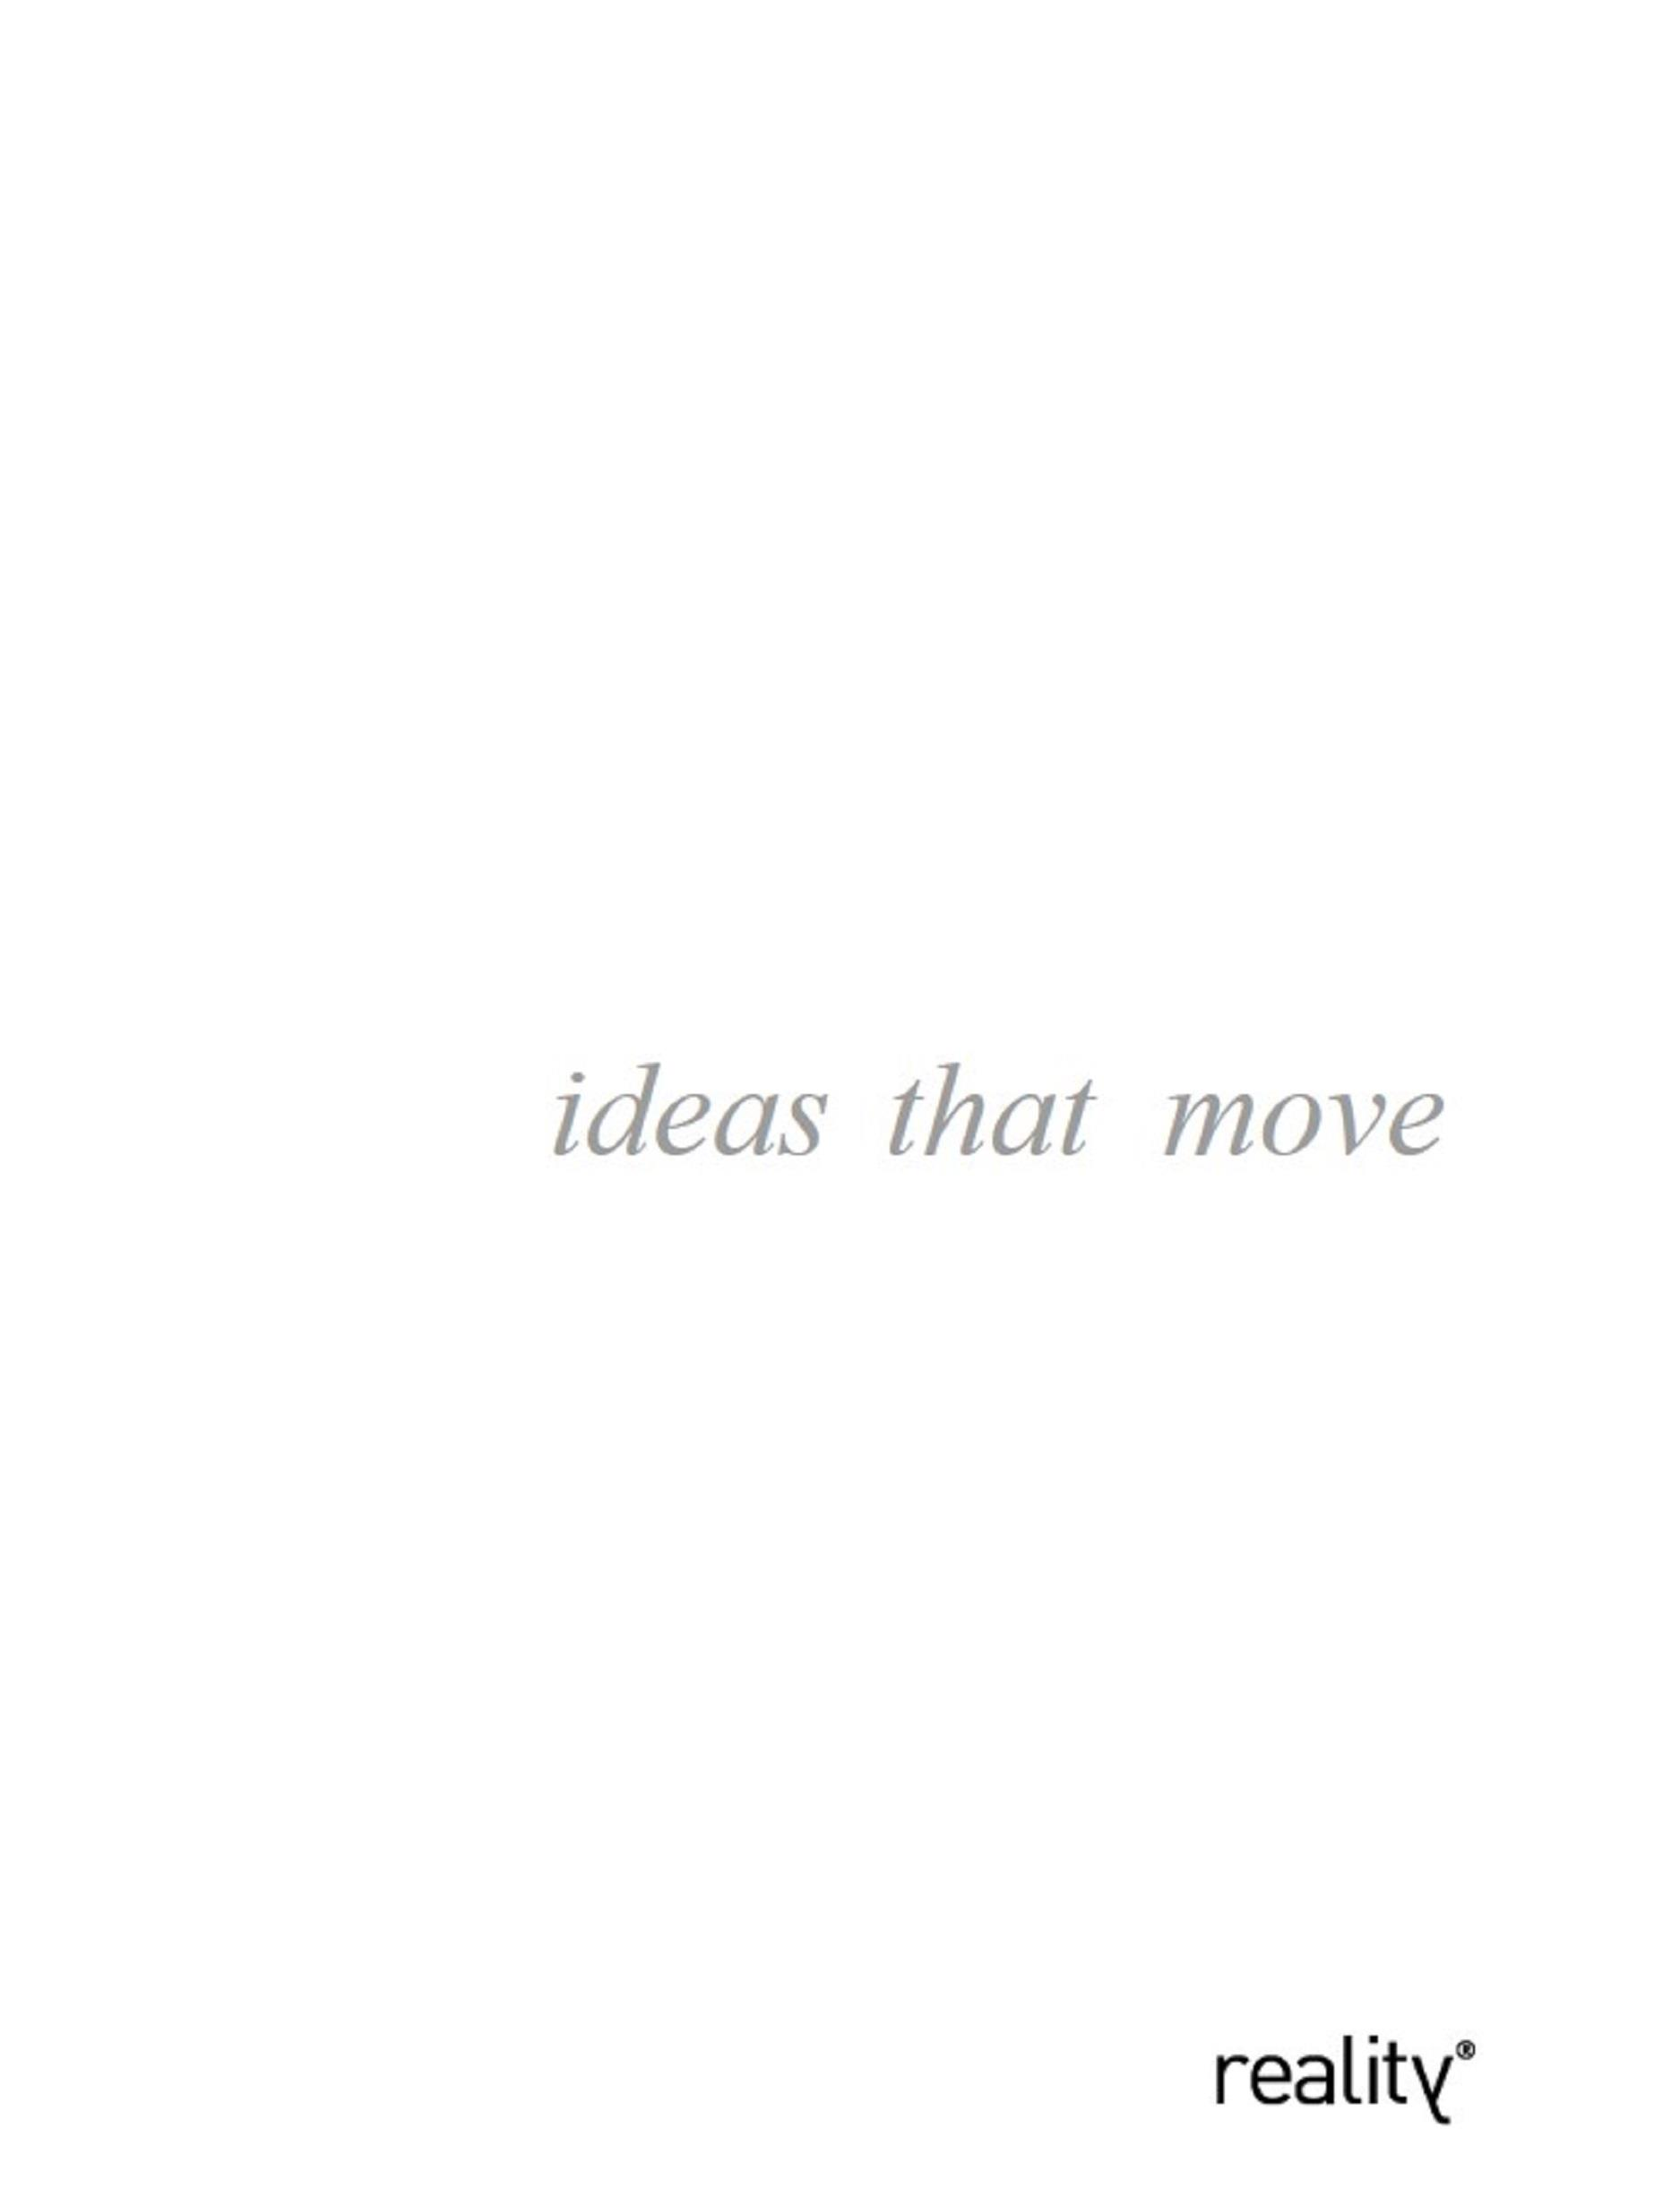 Ideas that move